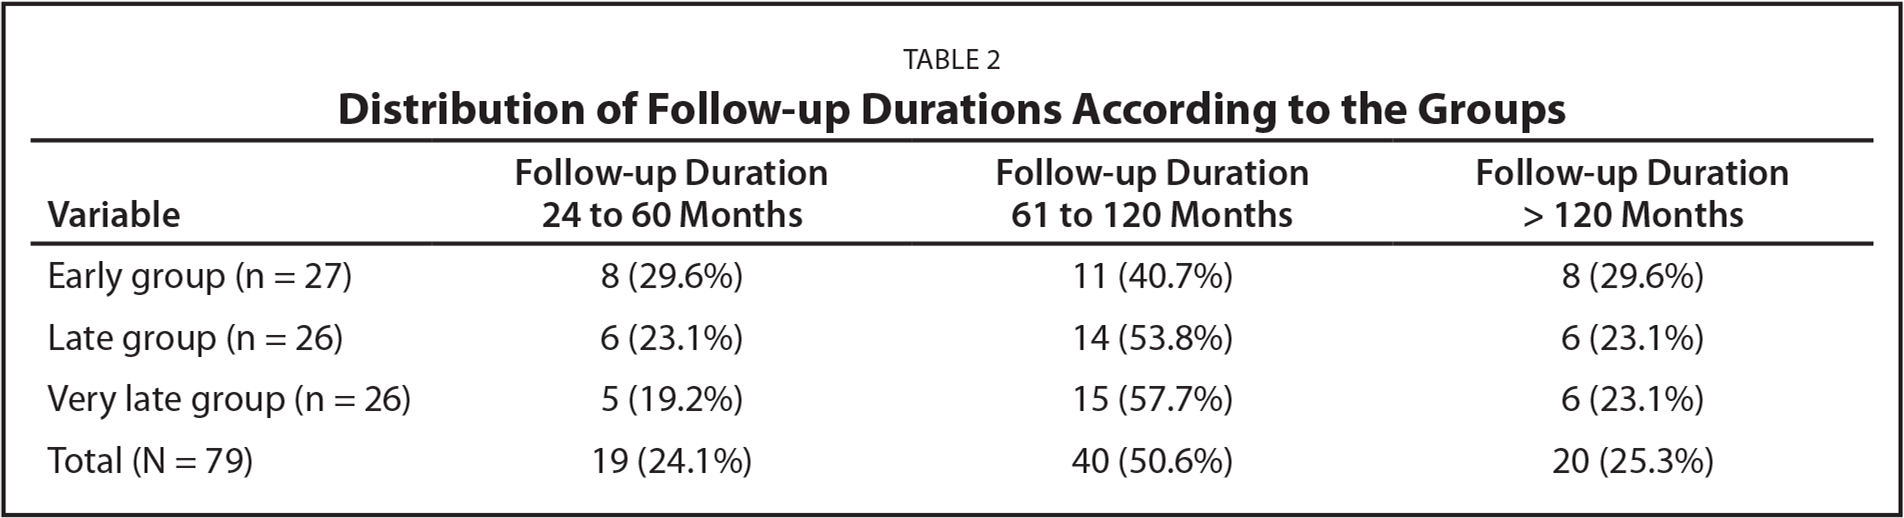 Distribution of Follow-up Durations According to the Groups